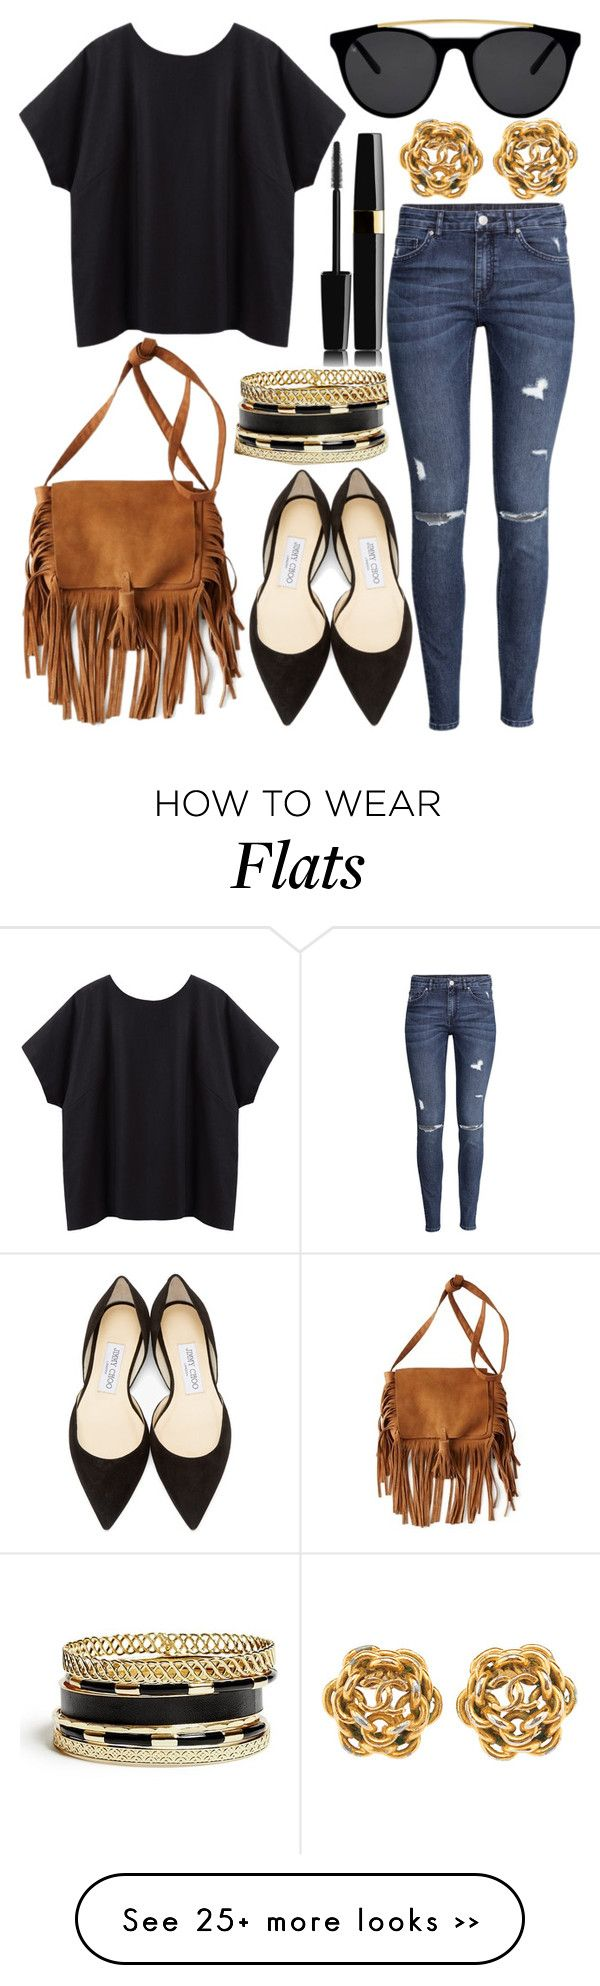 """Untitled #545"" by daimy-style on Polyvore featuring moda, La Garçonne Moderne, H&M, American Eagle Outfitters, Smoke & Mirrors, Jimmy Choo y GUESS"